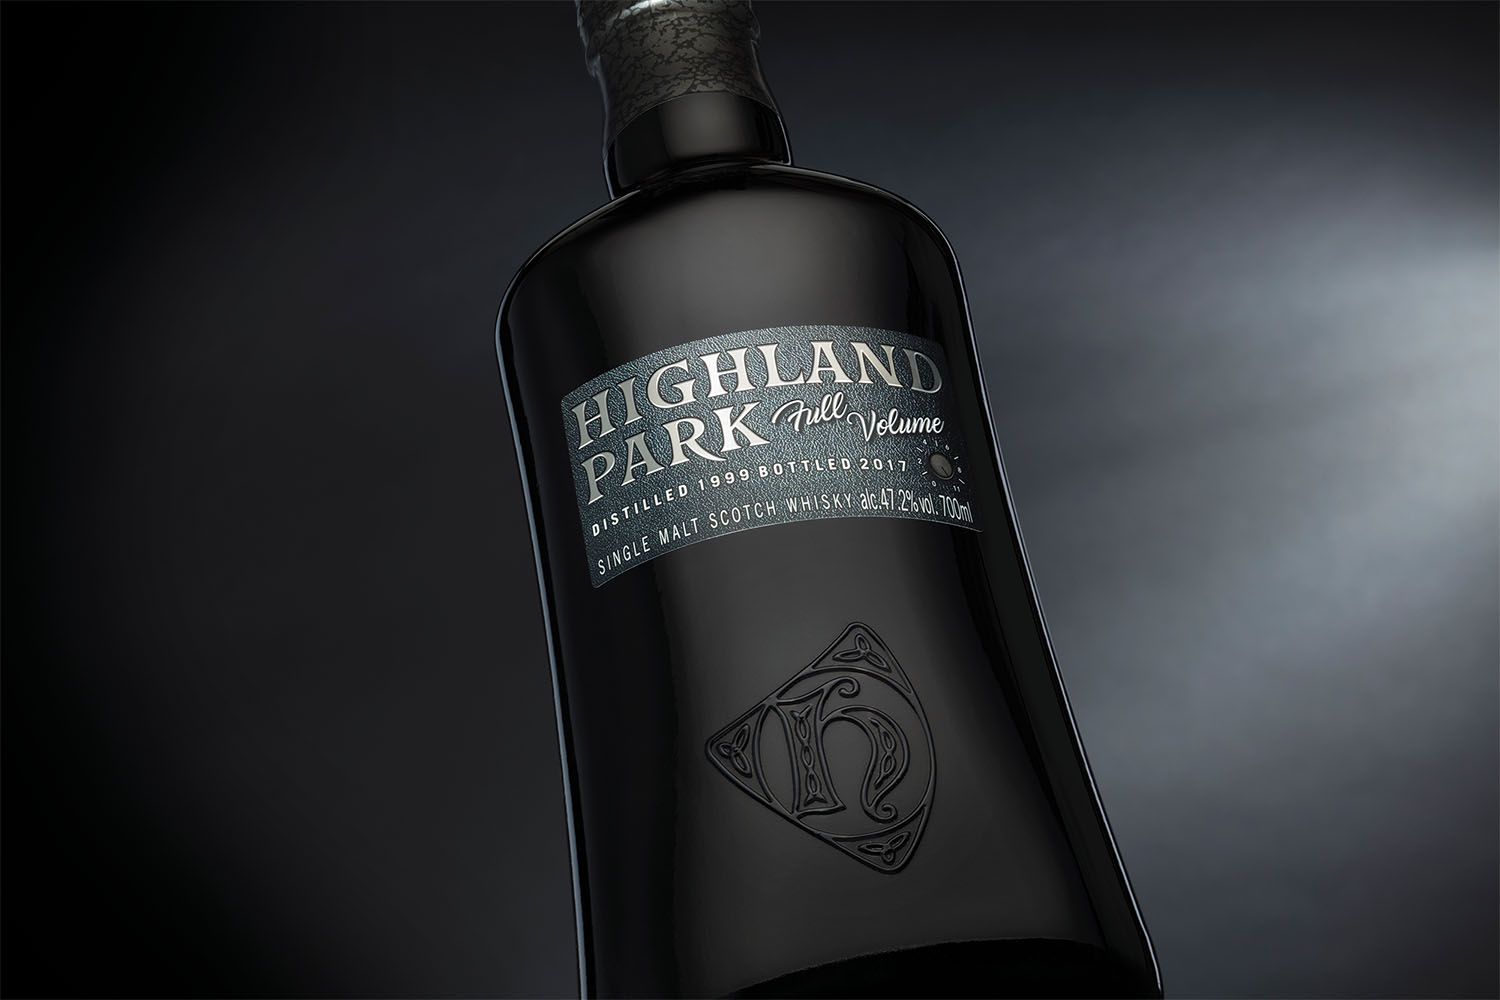 Mountain_Agency_Glasgow_Highland Park_Full Volume_003.jpg